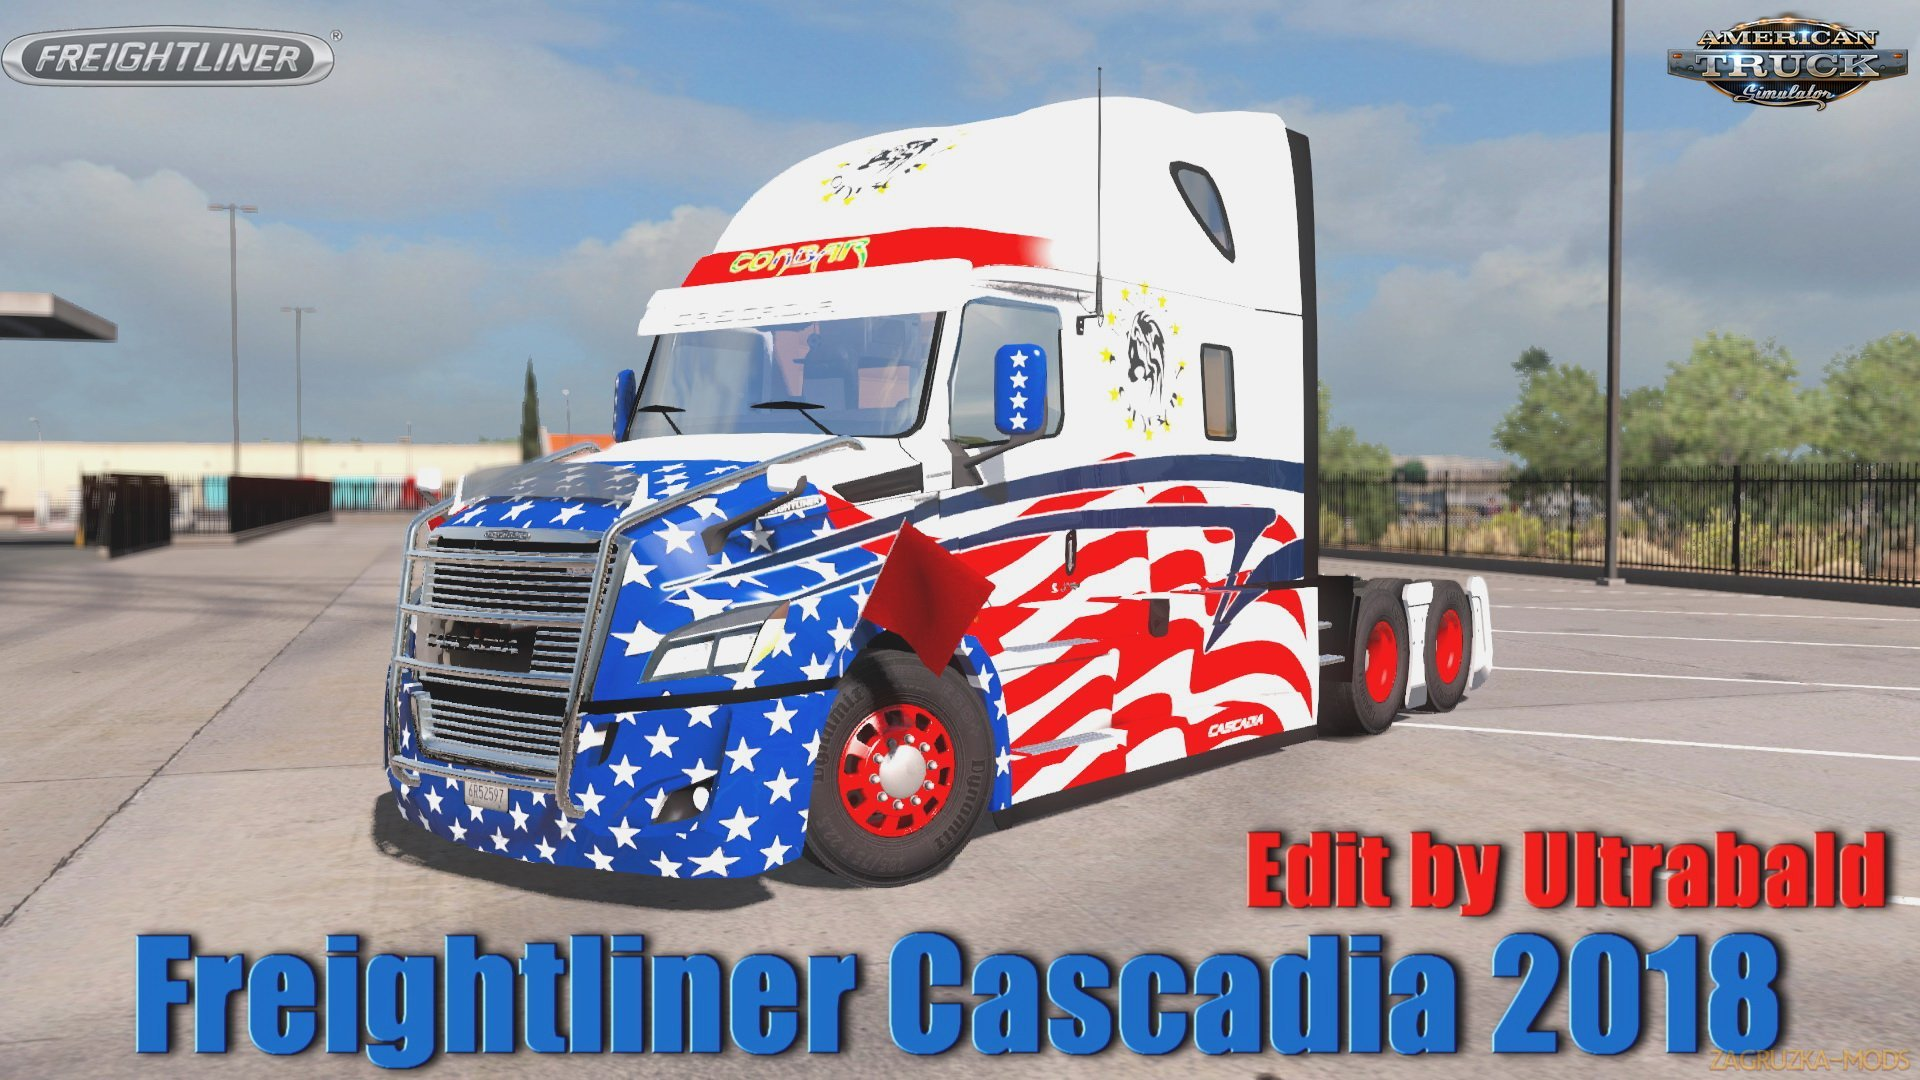 Freightliner Cascadia 2018 v1.6 Ultrabald Edition (1.34.x) for ATS